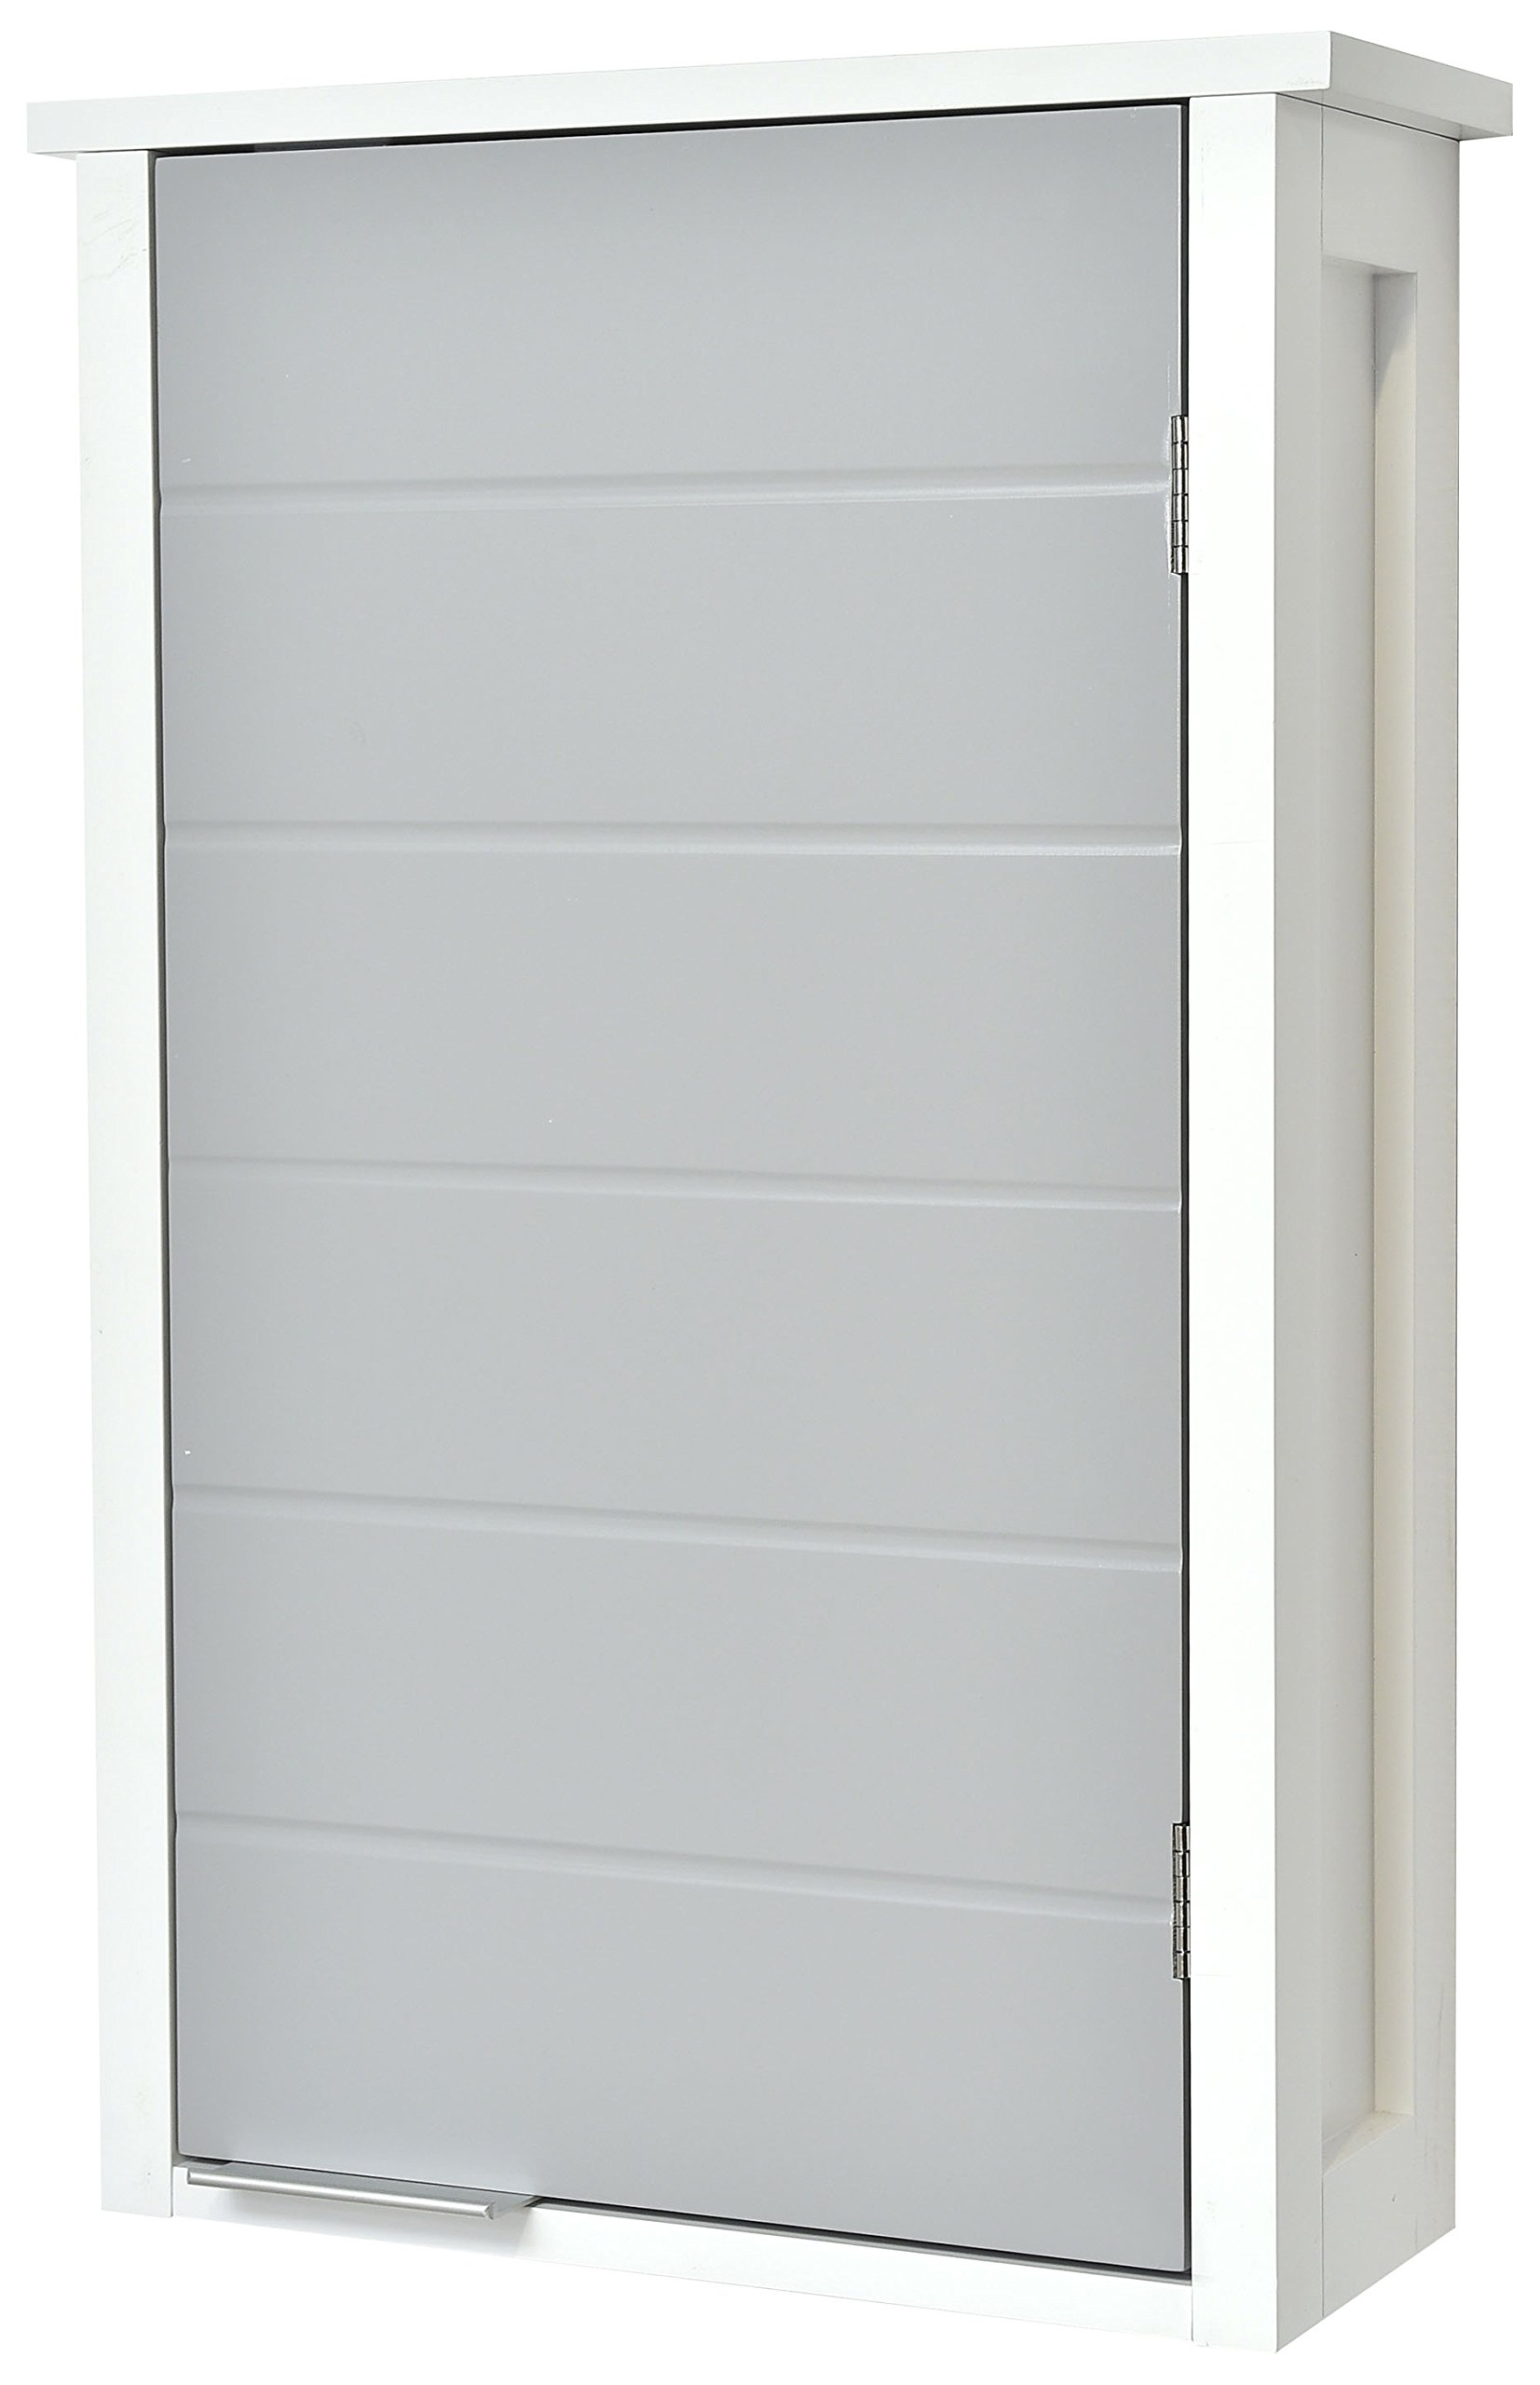 EVIDECO 9903208 Wall Mounted Bathroom Cabinet 1 Door-Modern D-White and Grey